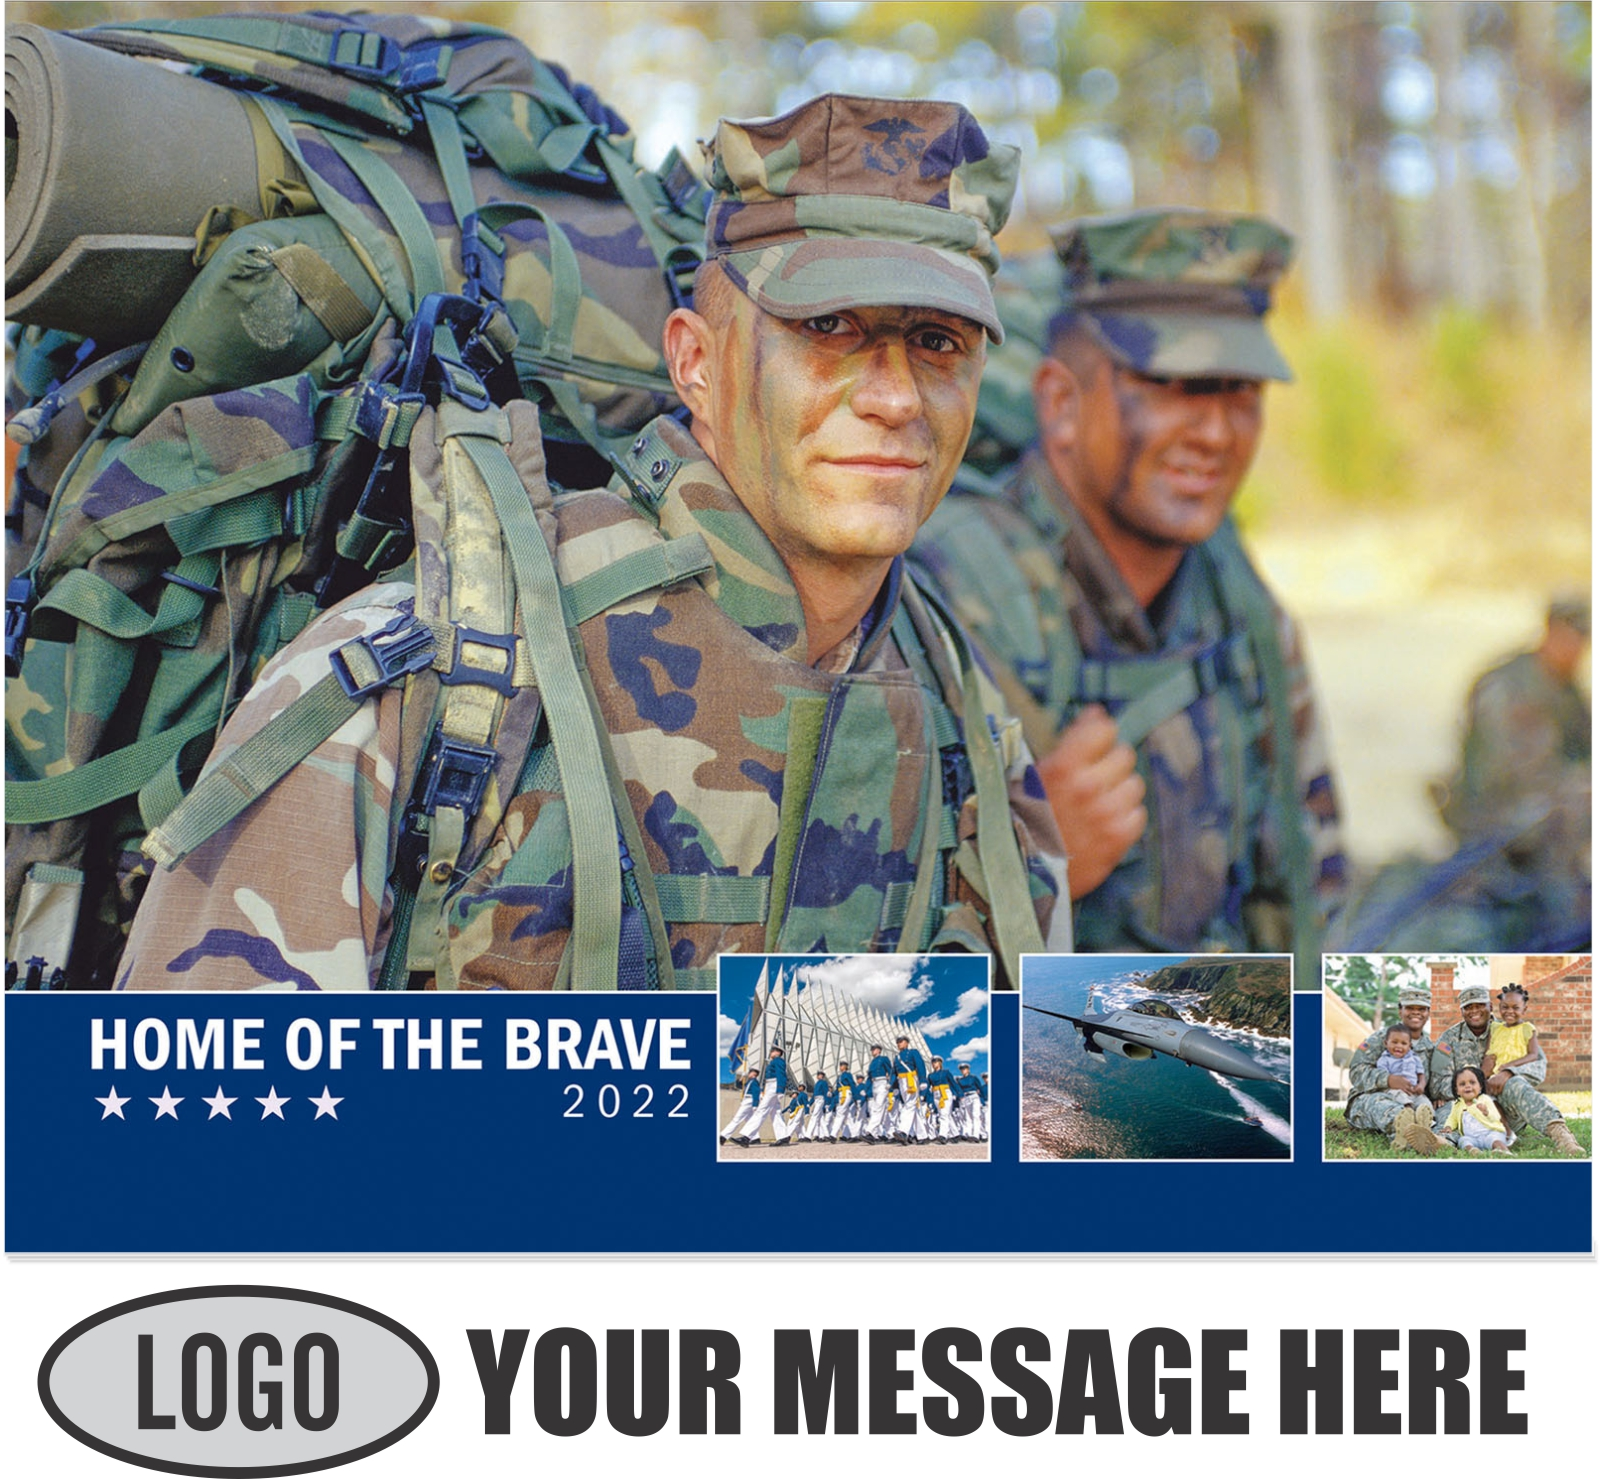 2022 Home of the Brave Promotional Calendar